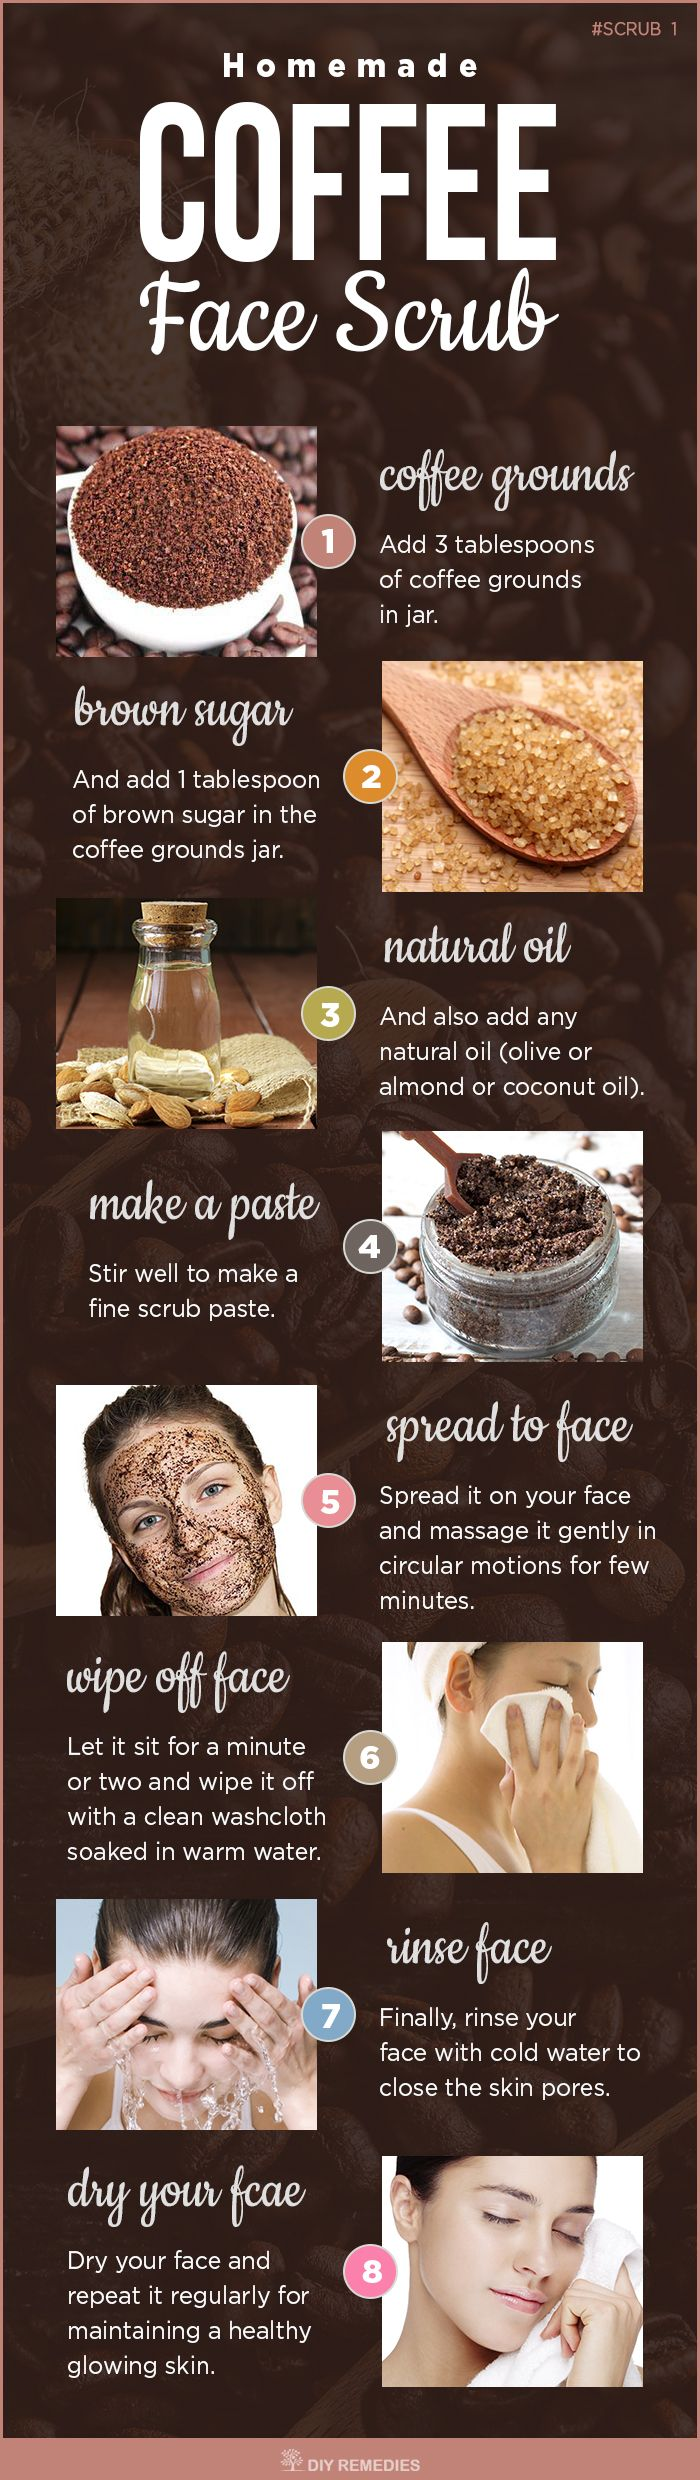 Homemade Natural Face Coffee Scrub